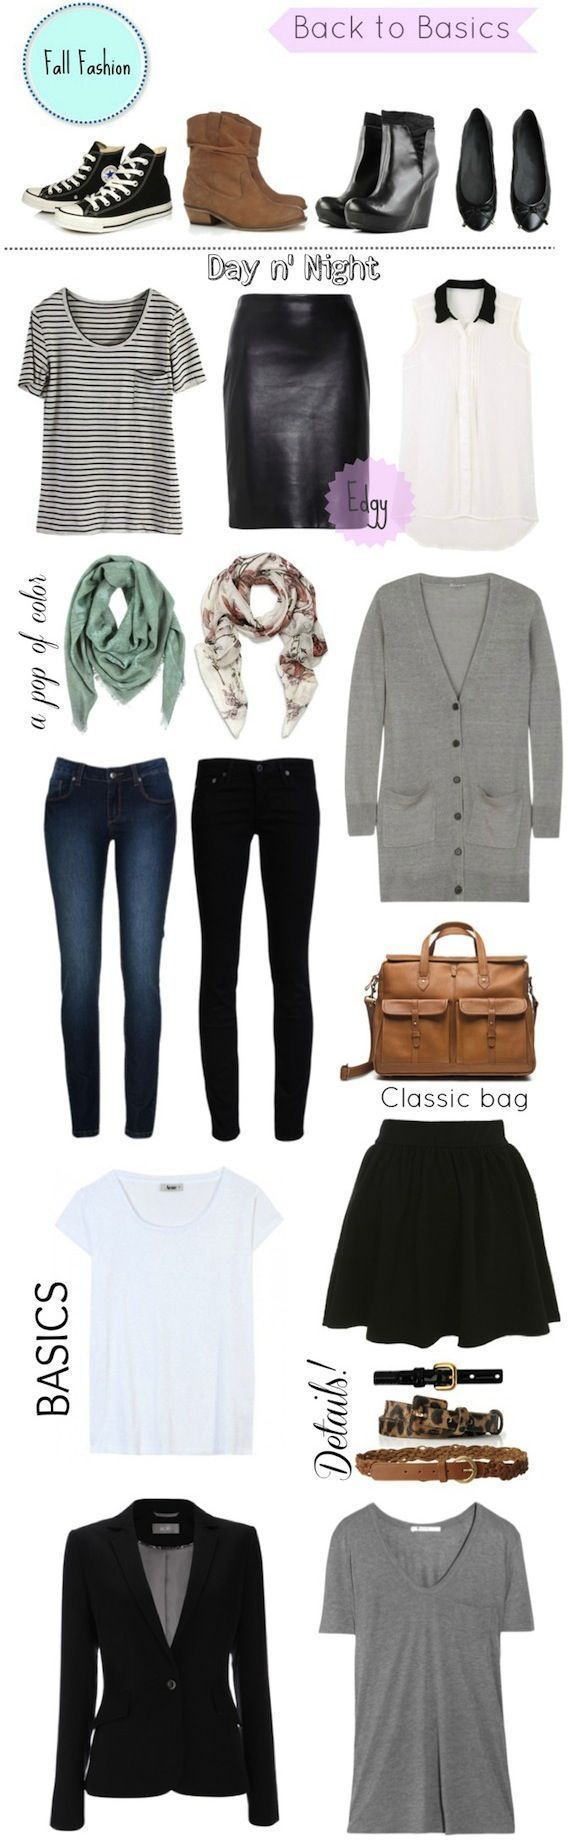 How to Build a Basic Wardrobe of Work Clothes For Women